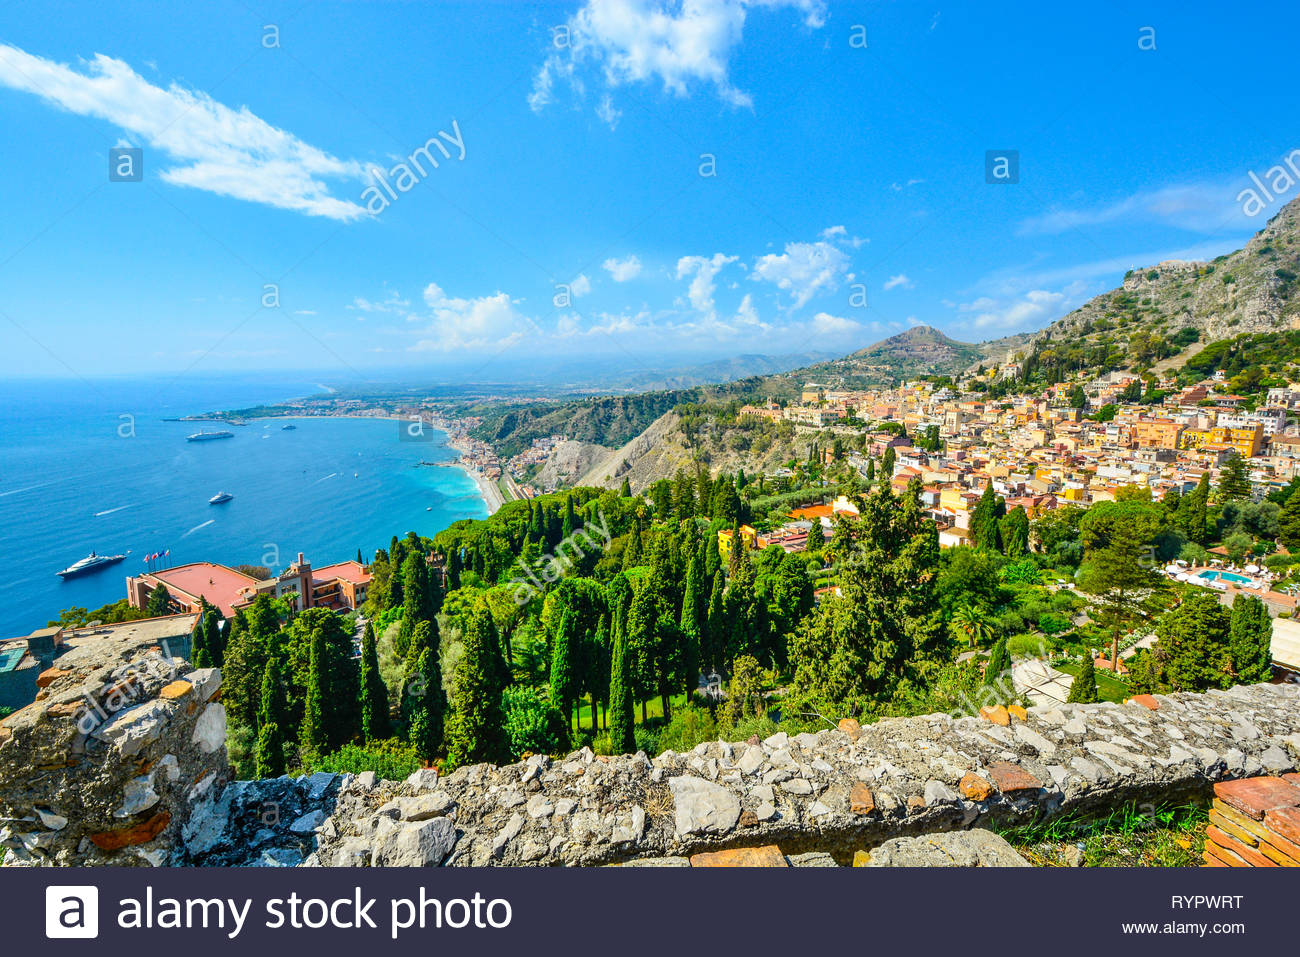 Looking down from the ancient Greek Theatre at Taormina, Italy, on the Italian island of Sicily, with boats and resorts dotting the Mediterranean sea Stock Photo